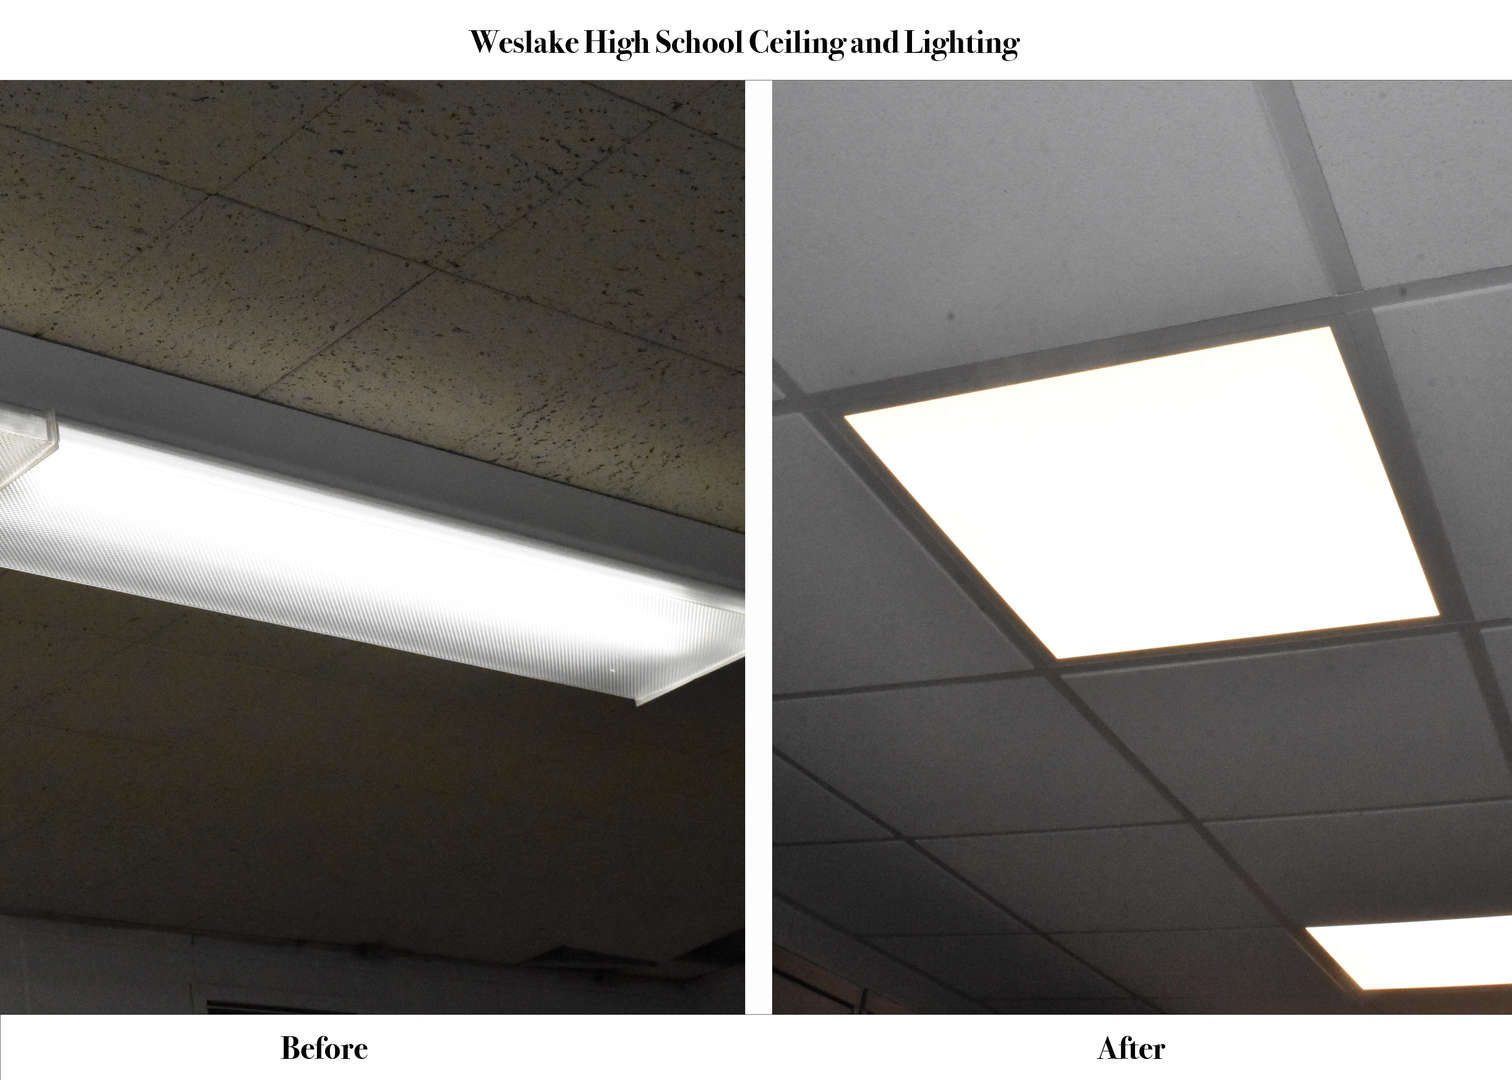 WHS Ceiling and Lighting before and after renovation